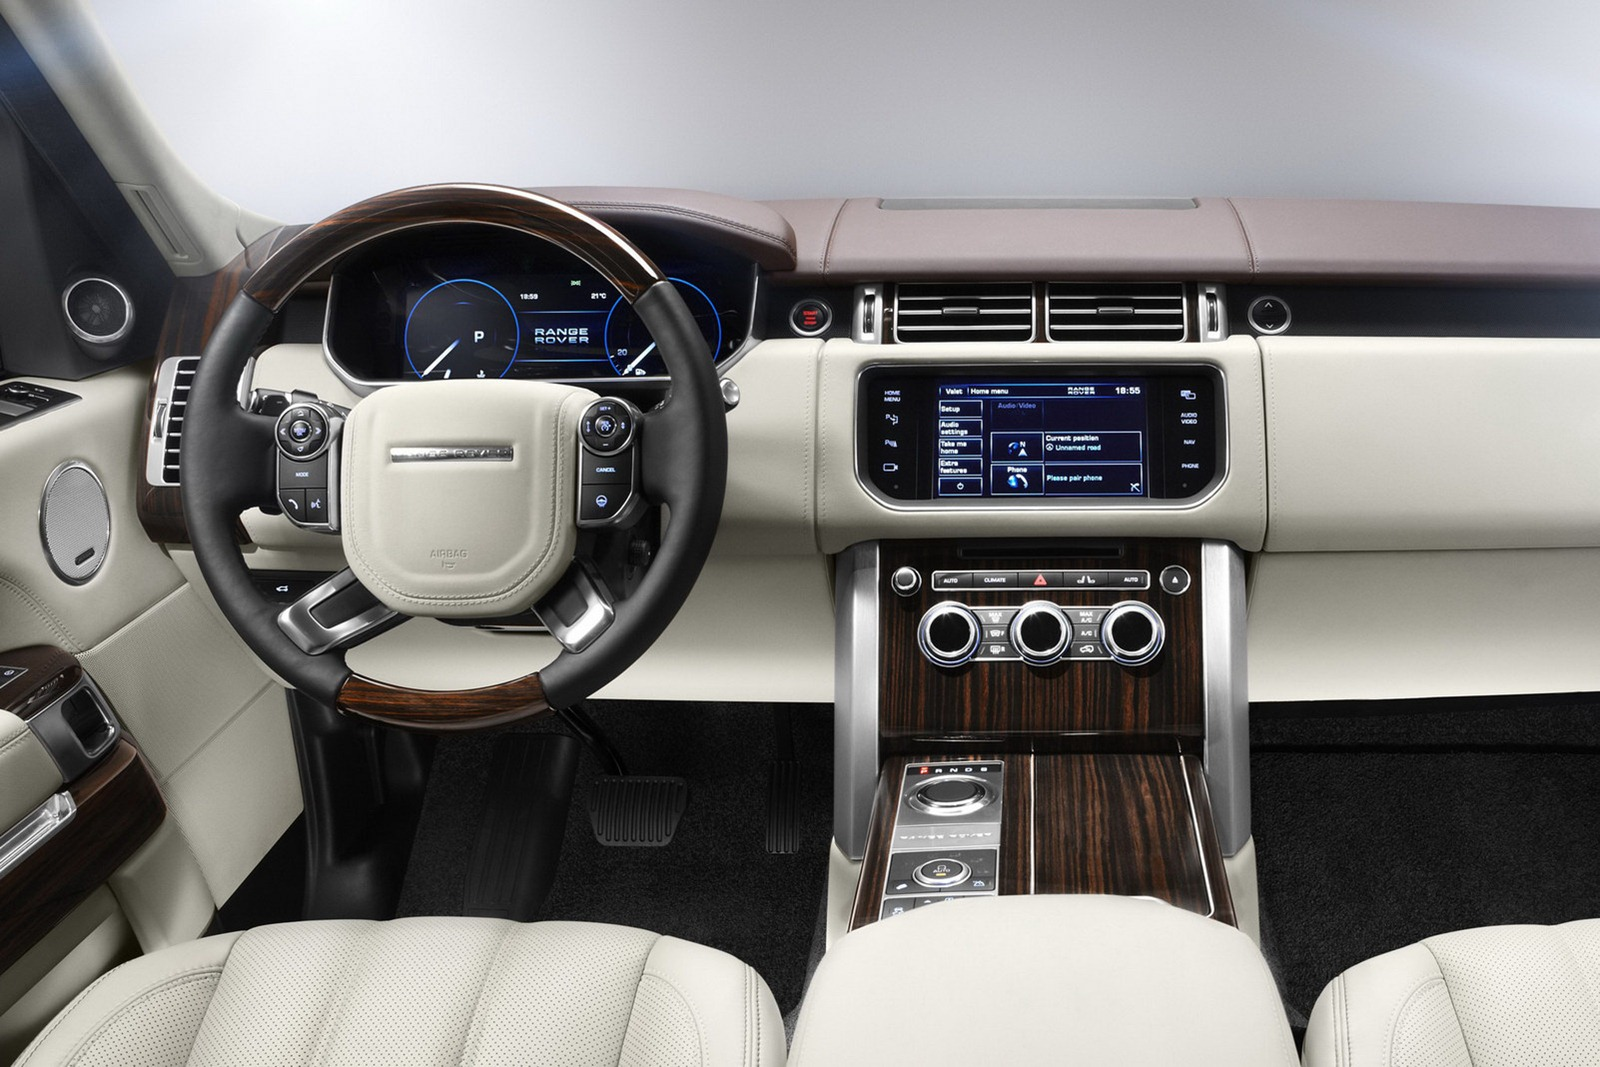 2013 Range Rover SUV 4 2013 Range Rover SUV   A Review